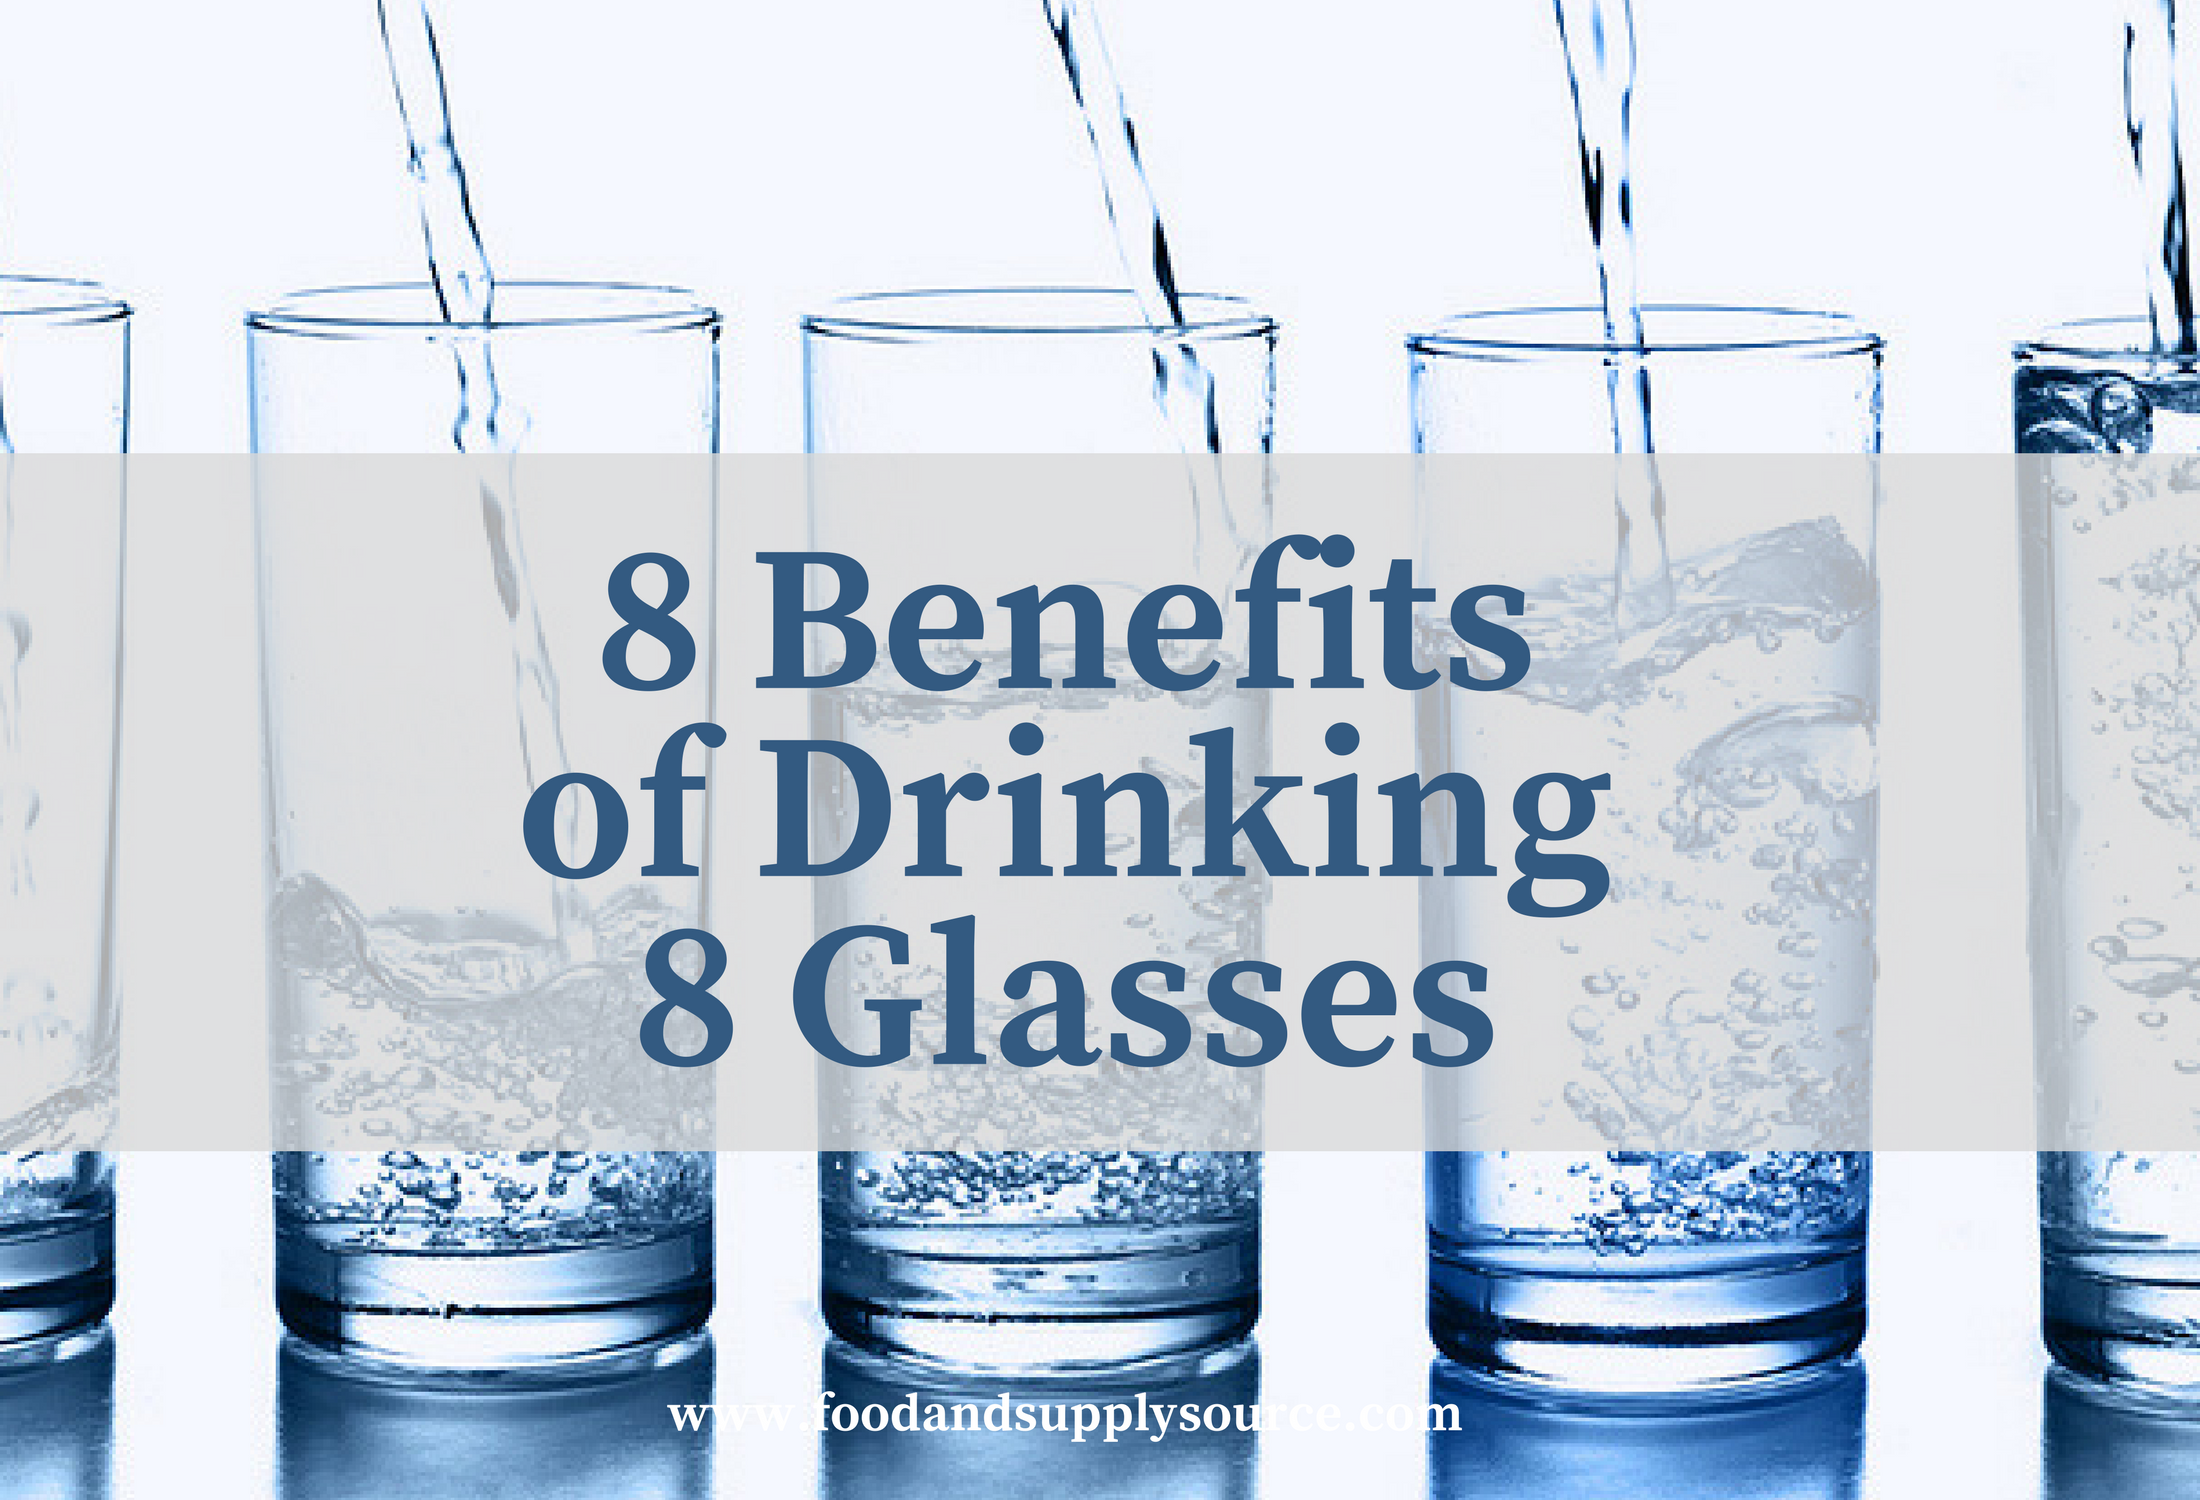 8 Benefits of Drinking 8 Glasses of Water